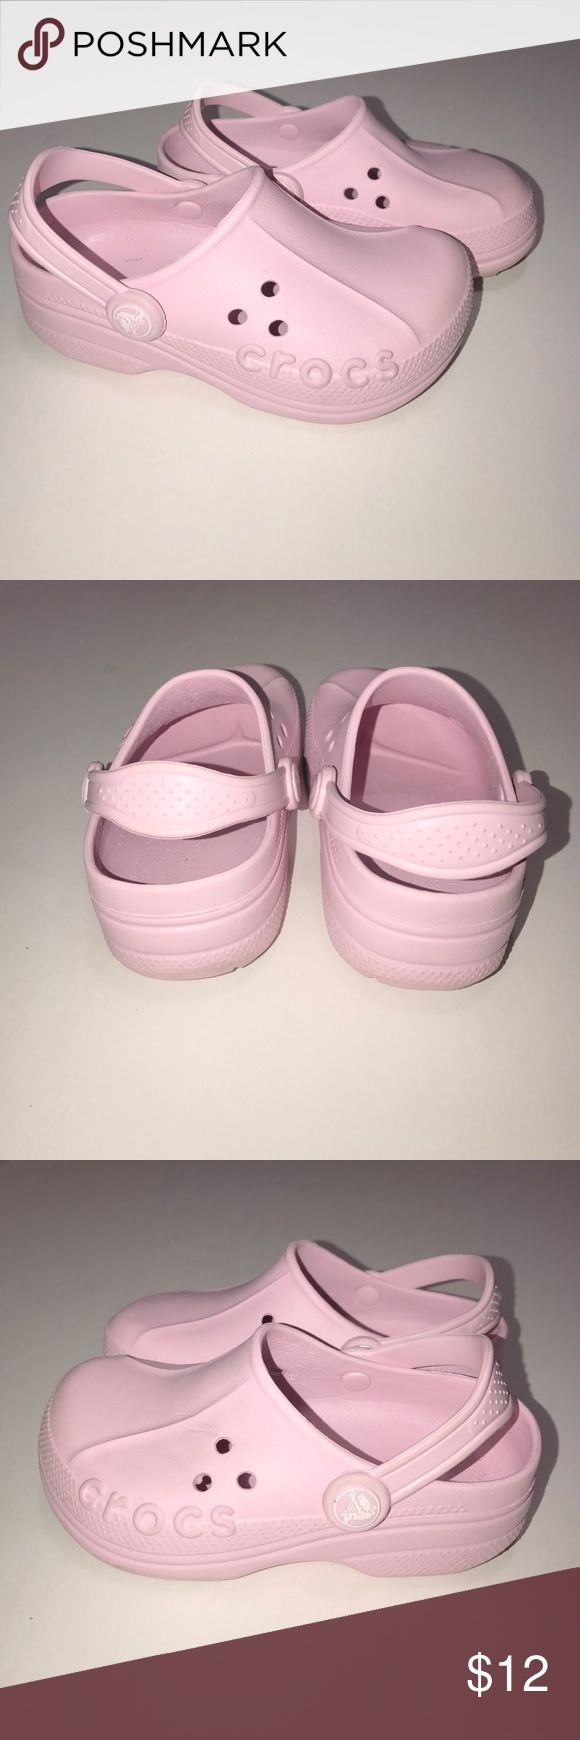 Pink Crocs • Gently used • Size 10/11 C • Scuffs & imperfections pictured • CROCS Shoes